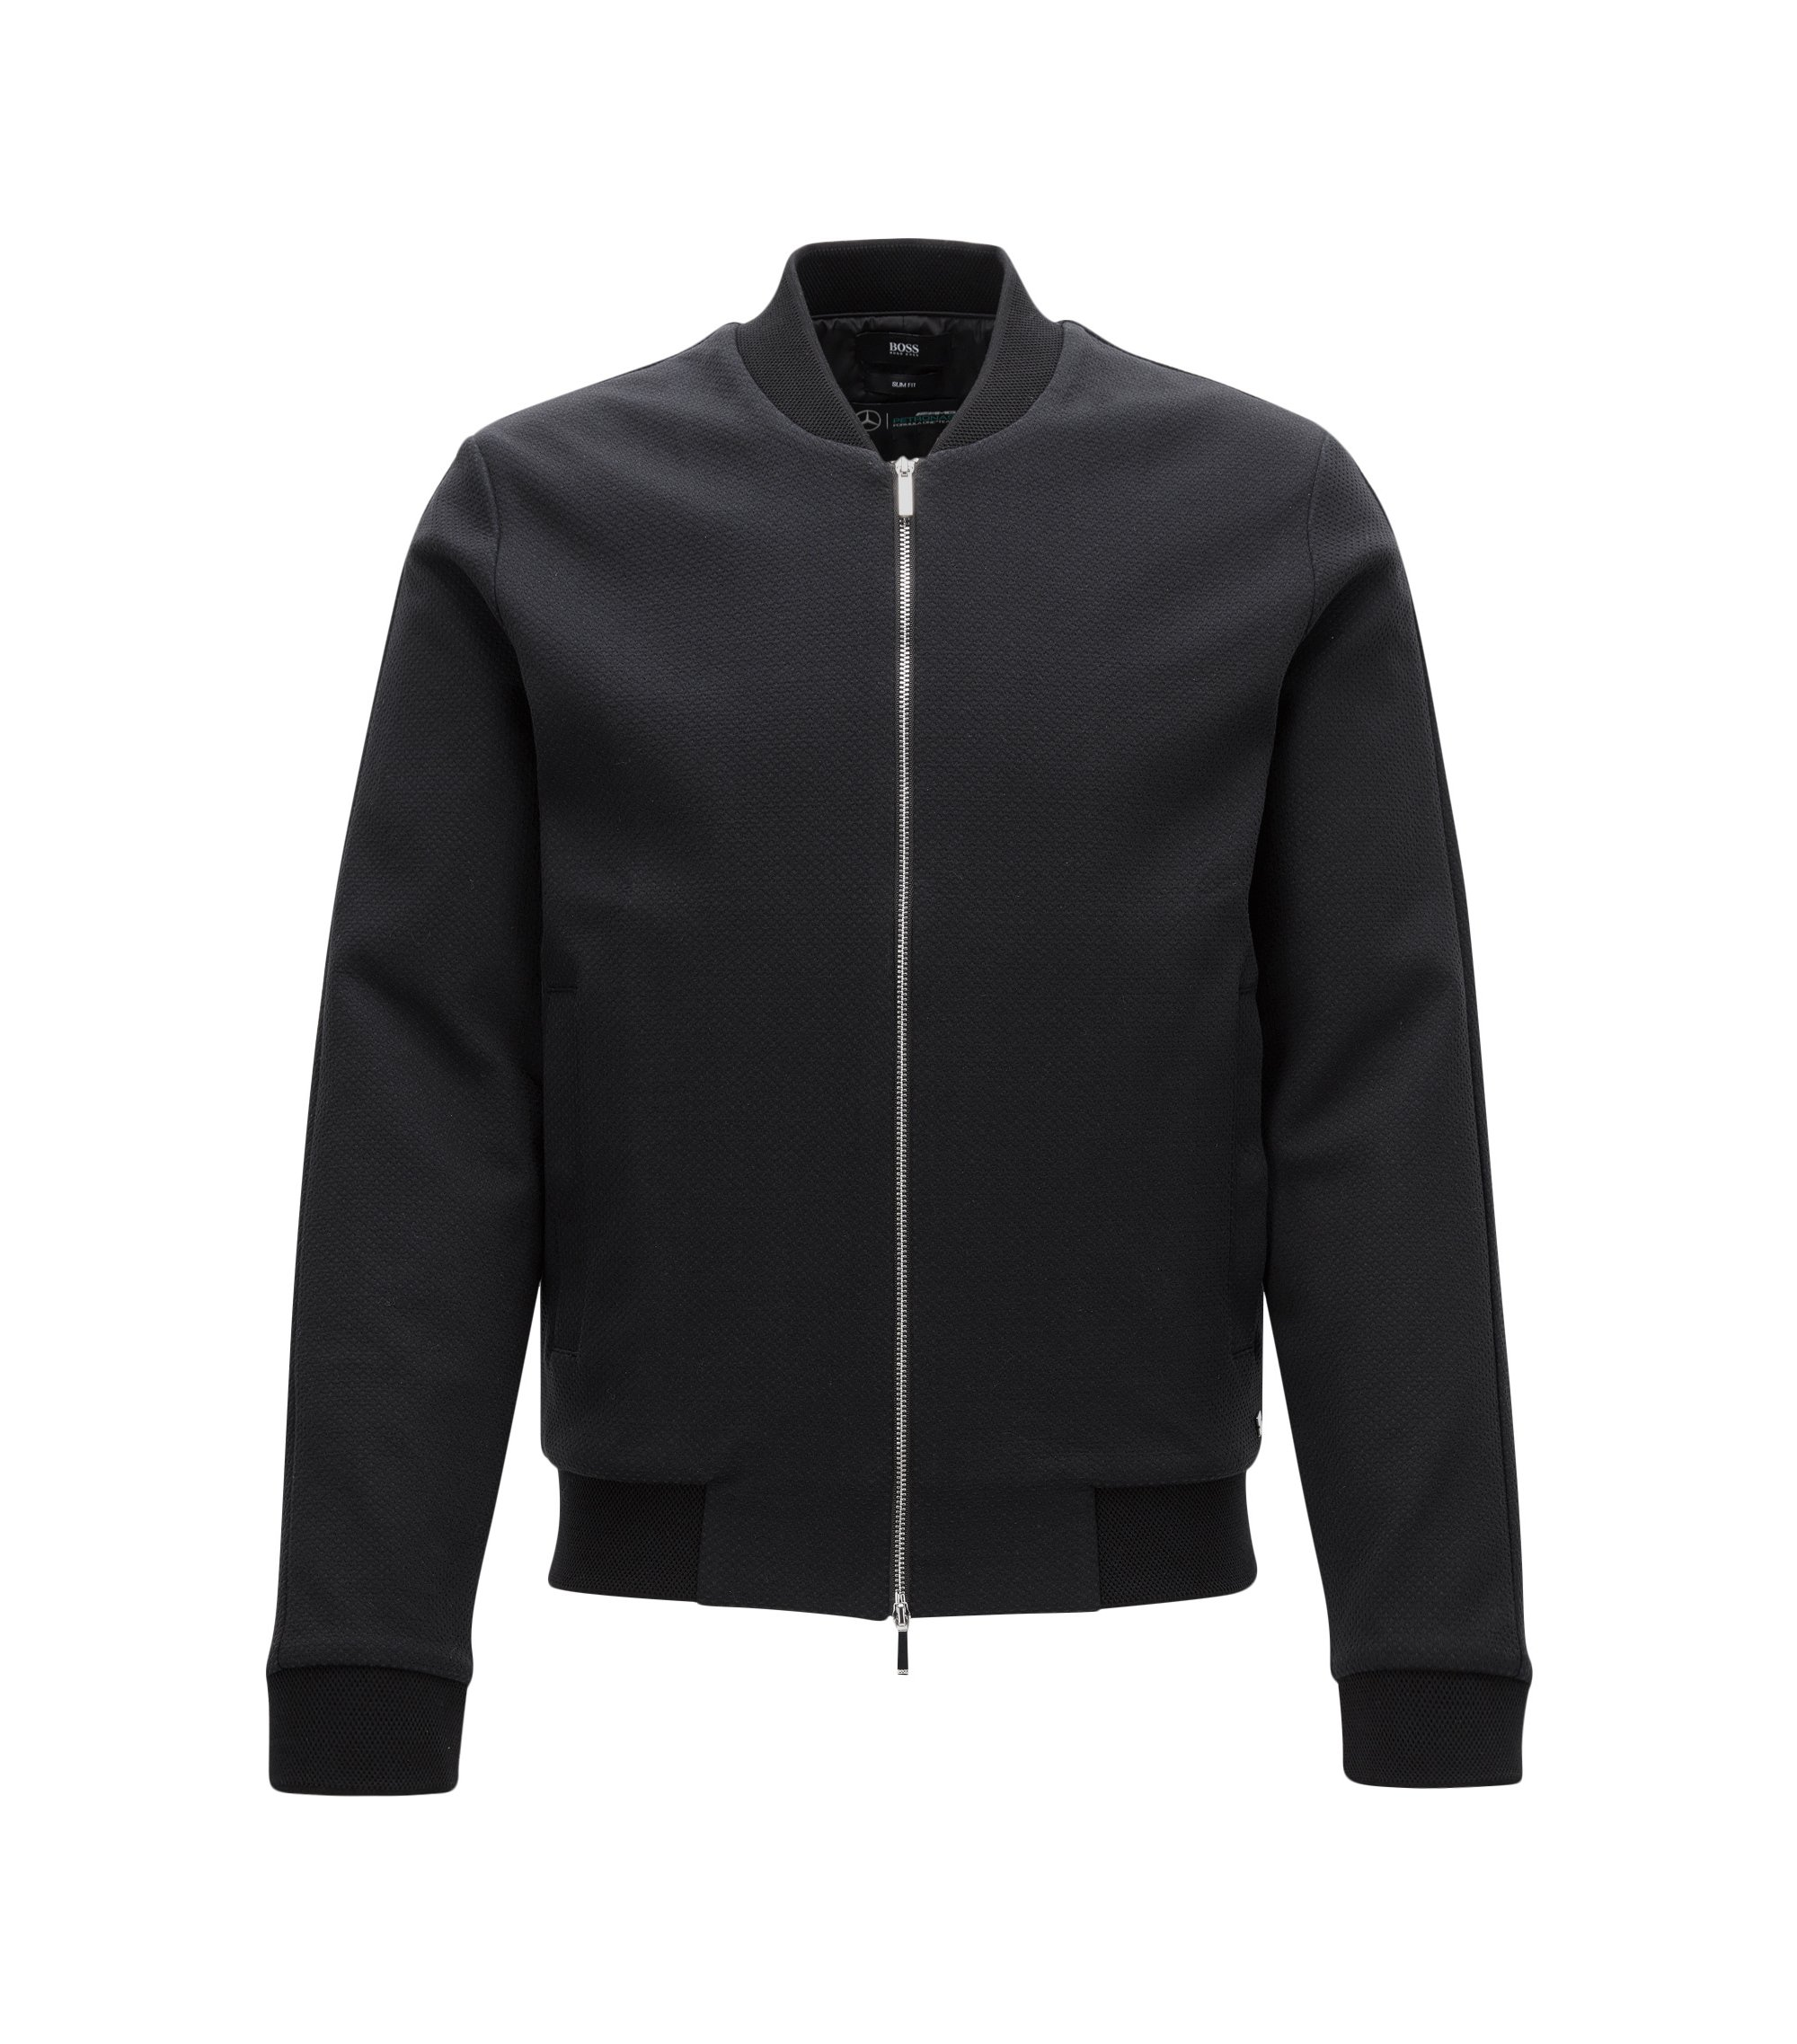 Slim-fit Mercedes-Benz jacket in cotton, Black